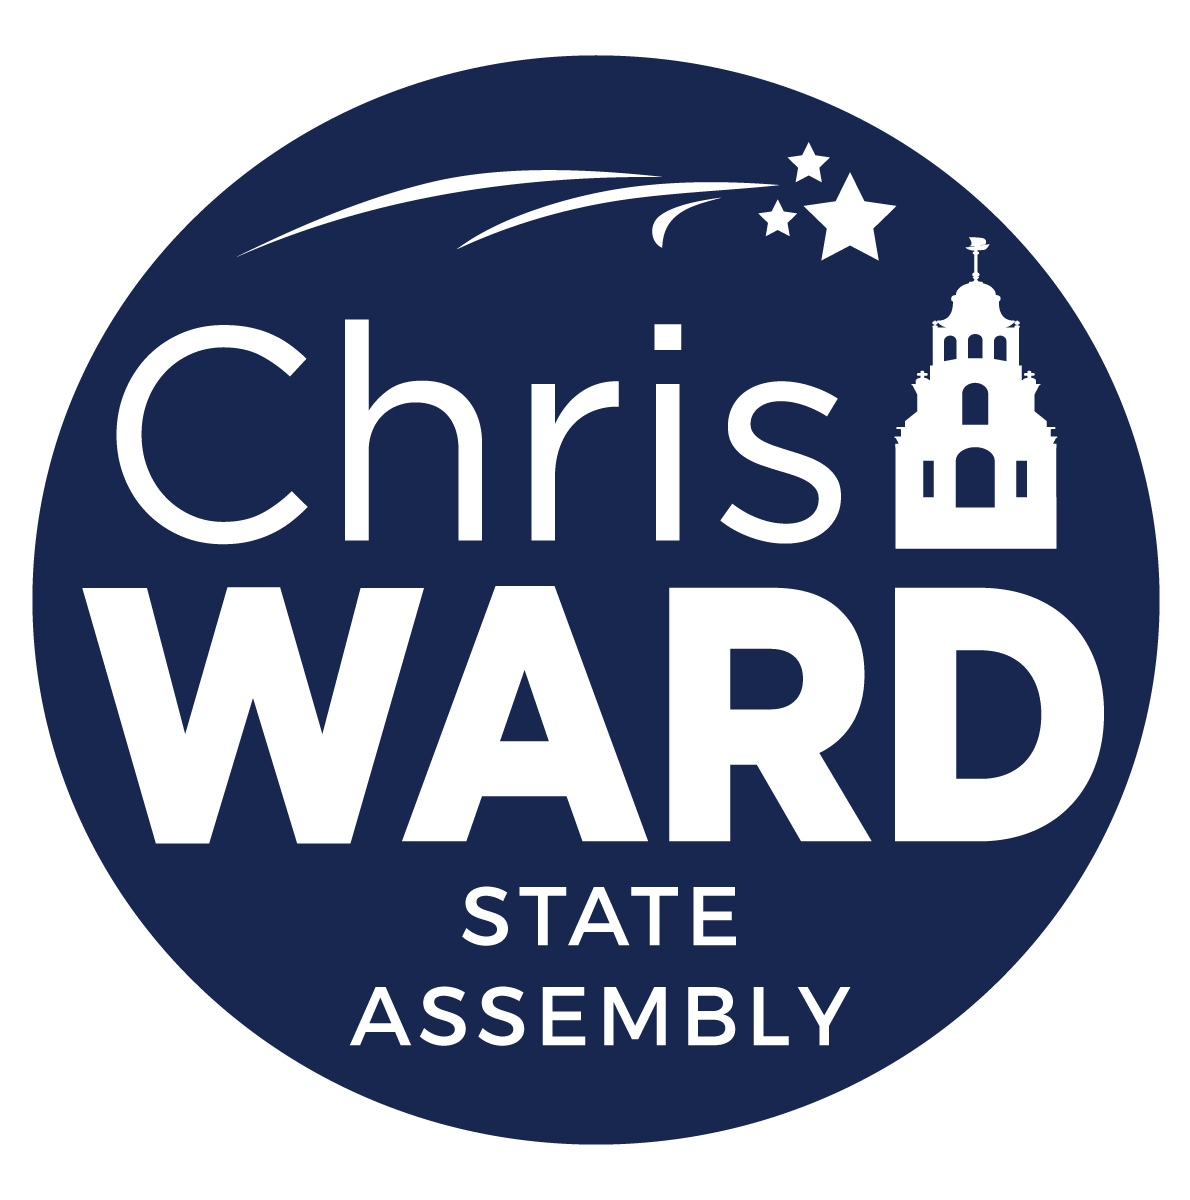 Chris Ward for State Assembly